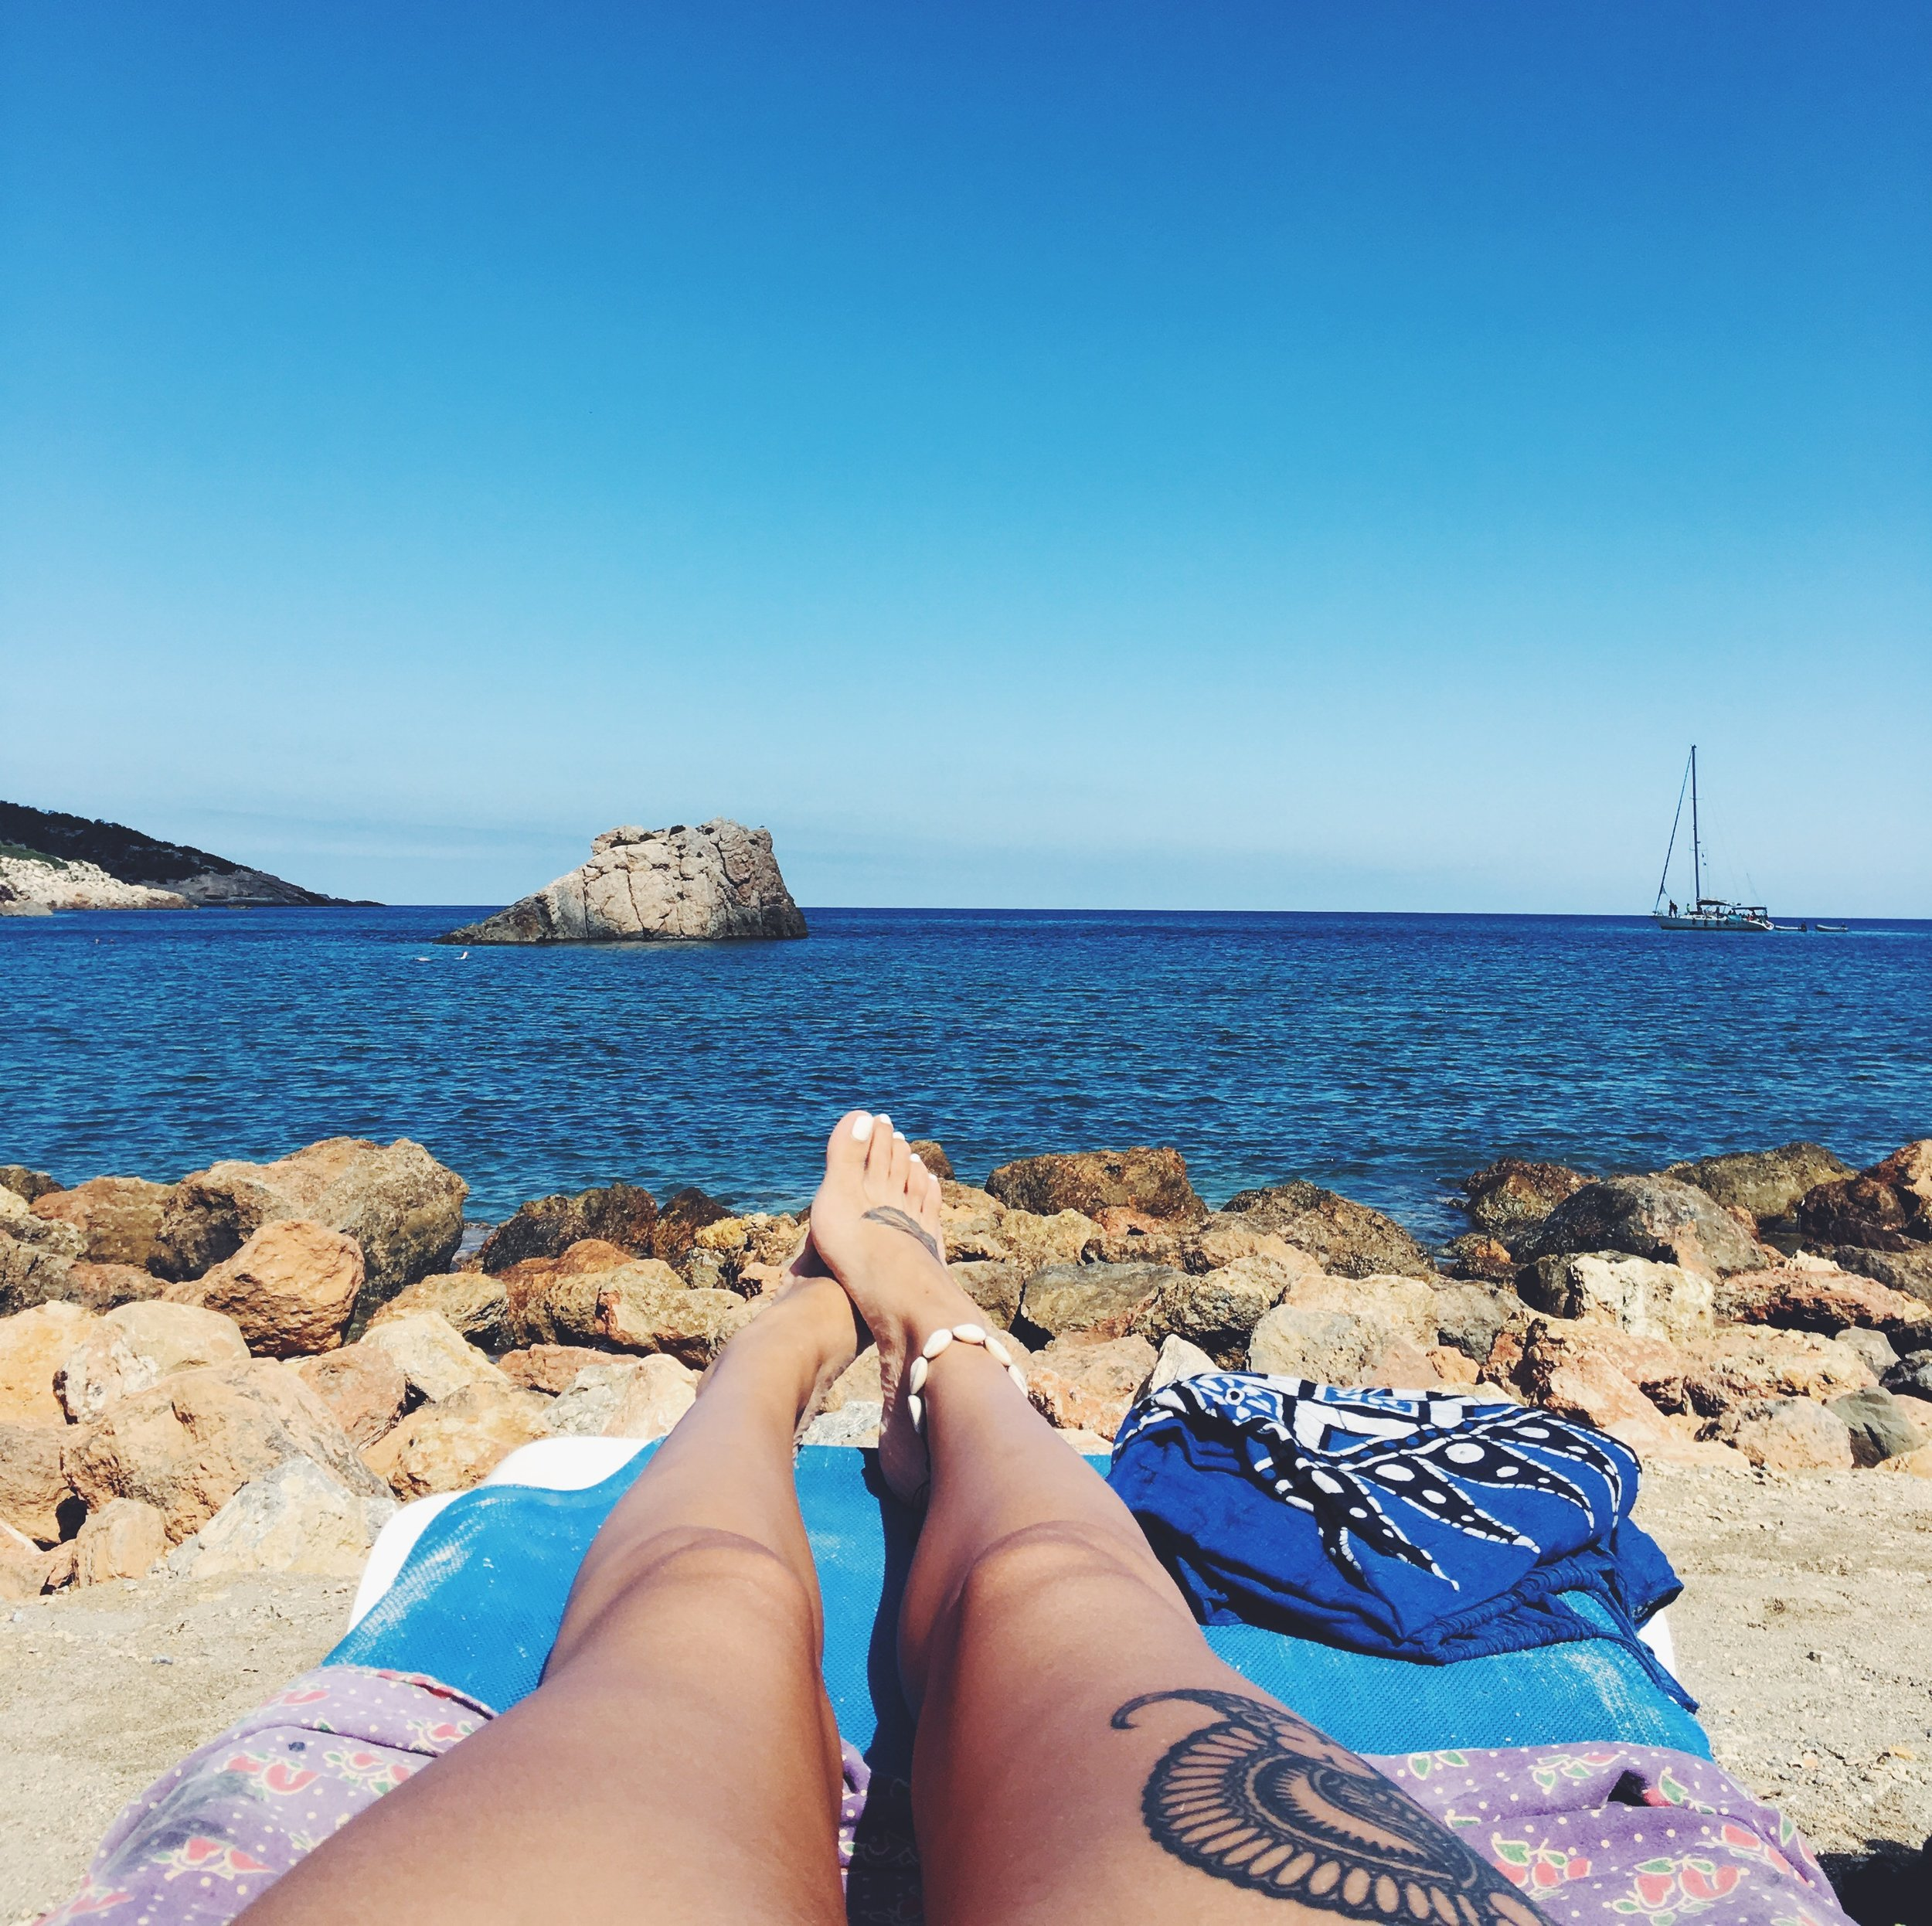 Rooted in Ibiza